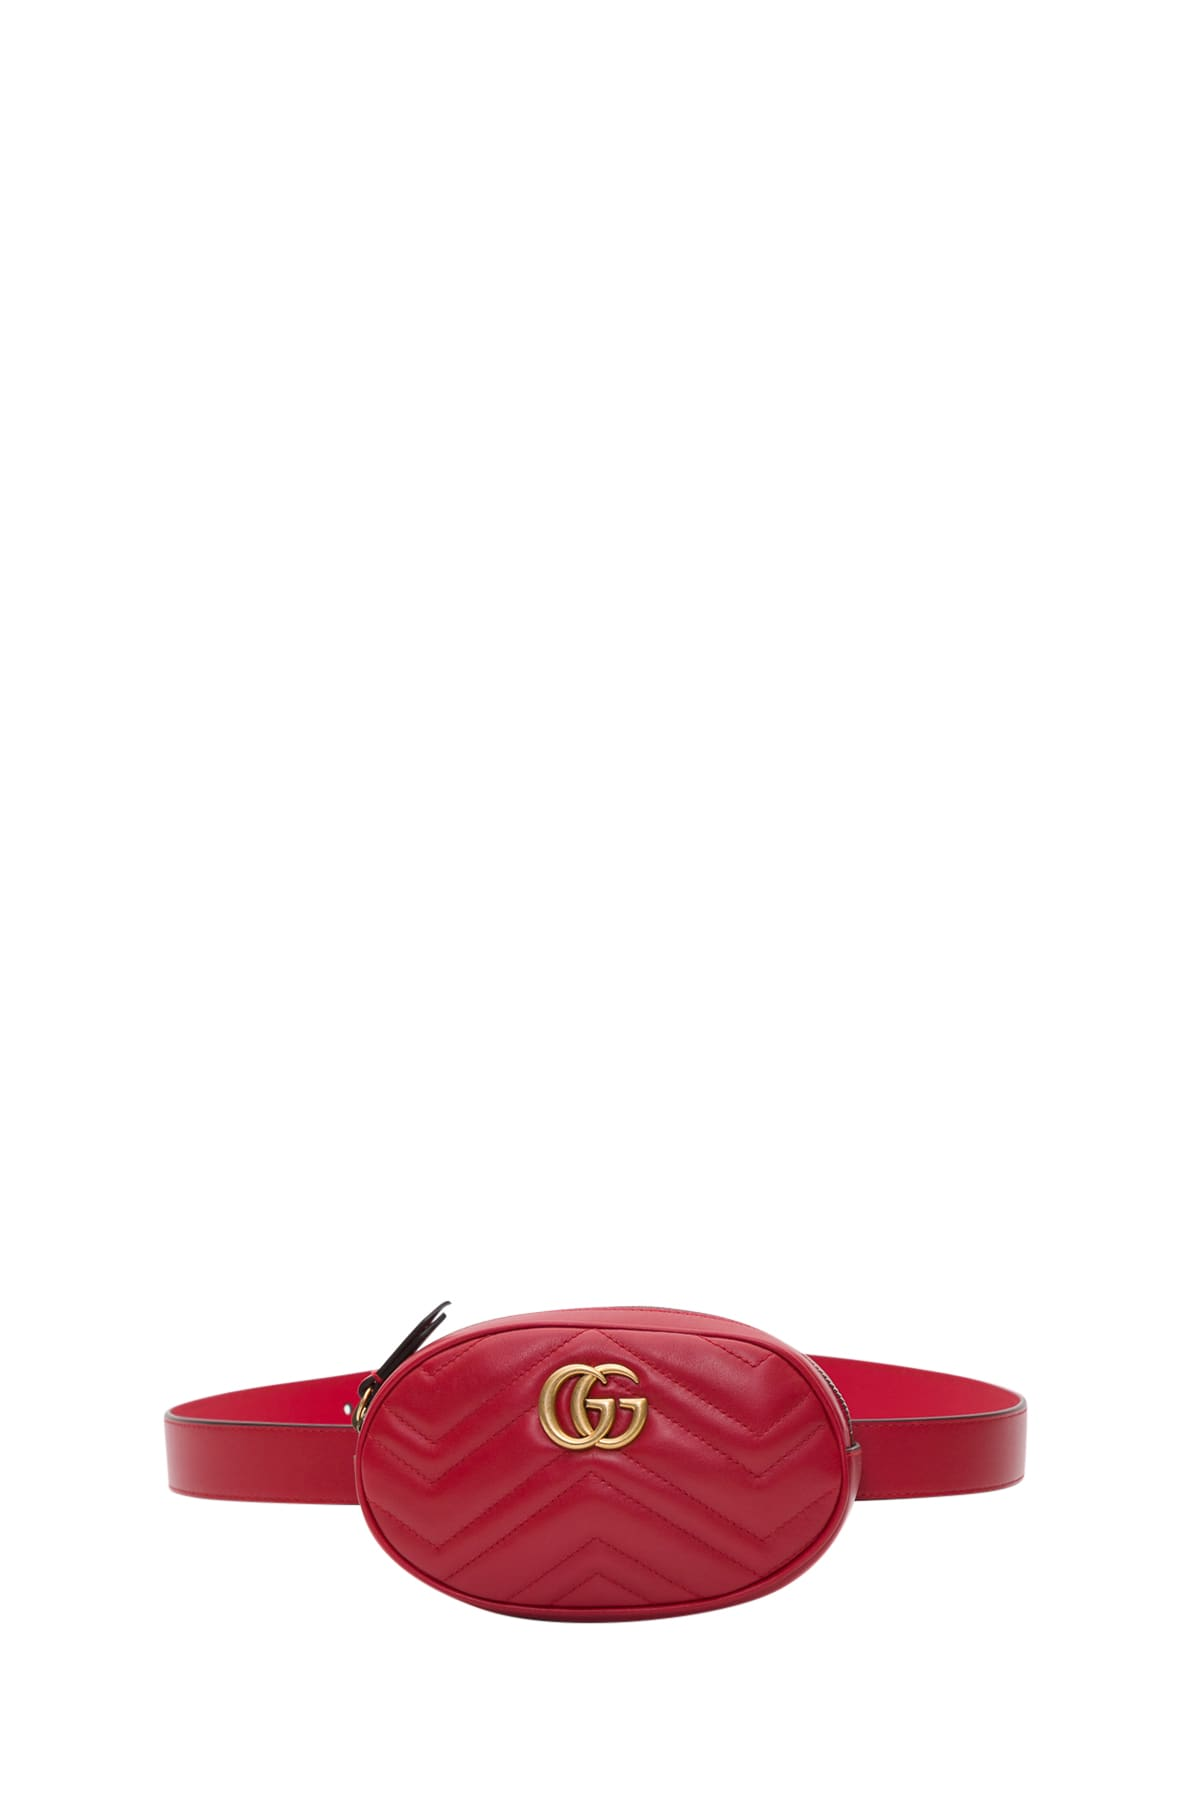 Gucci Gg Marmon Belt Bag In Chevron Leather